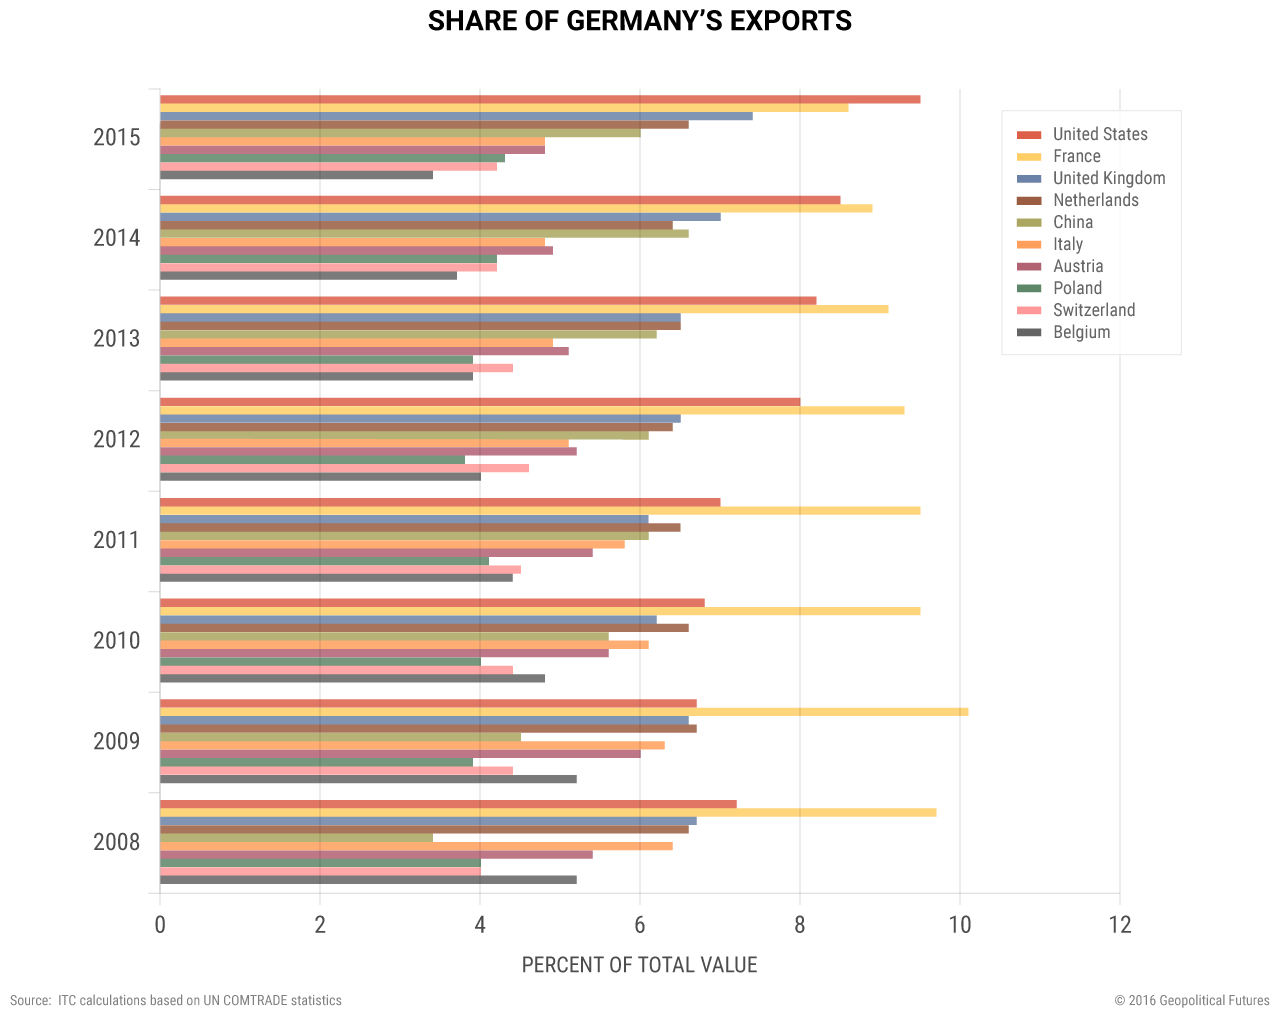 germany-share-exports